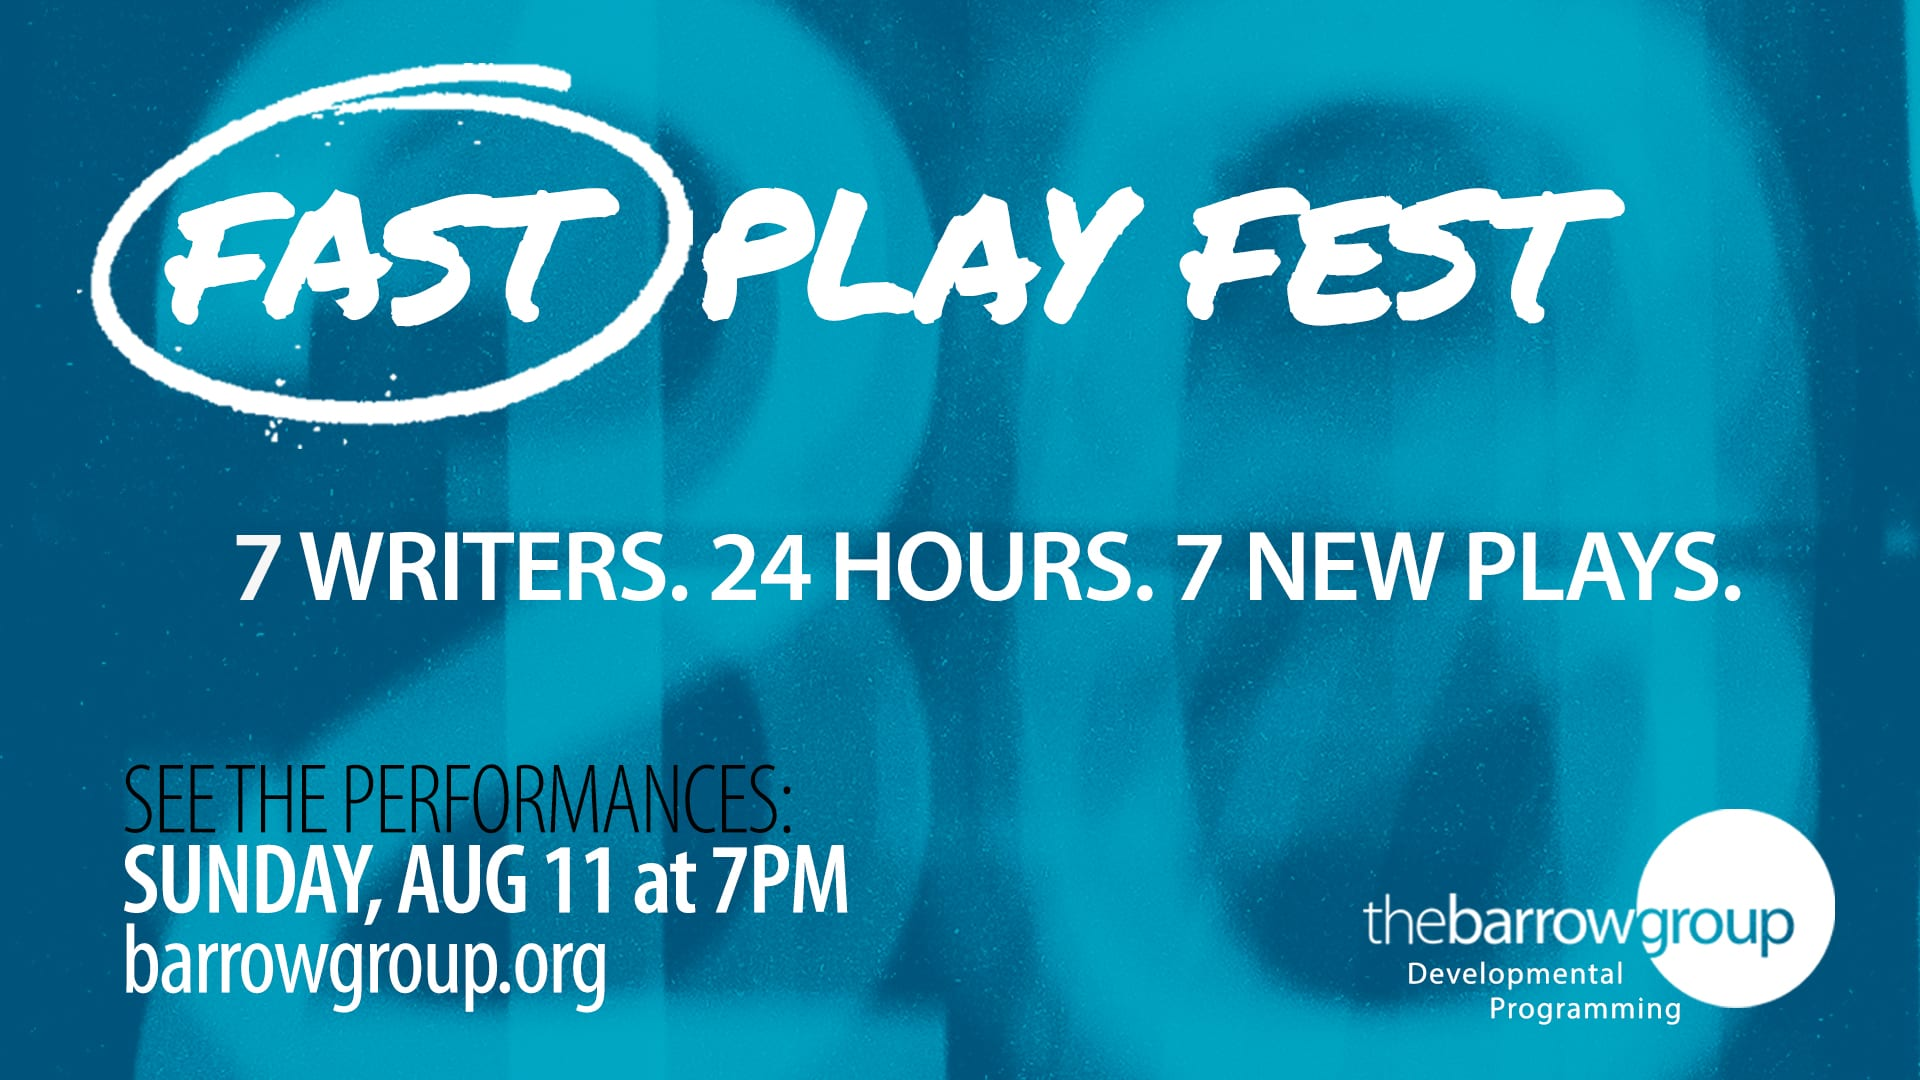 Fast Play Fest 2019 - The Barrow Group Theatre Company and